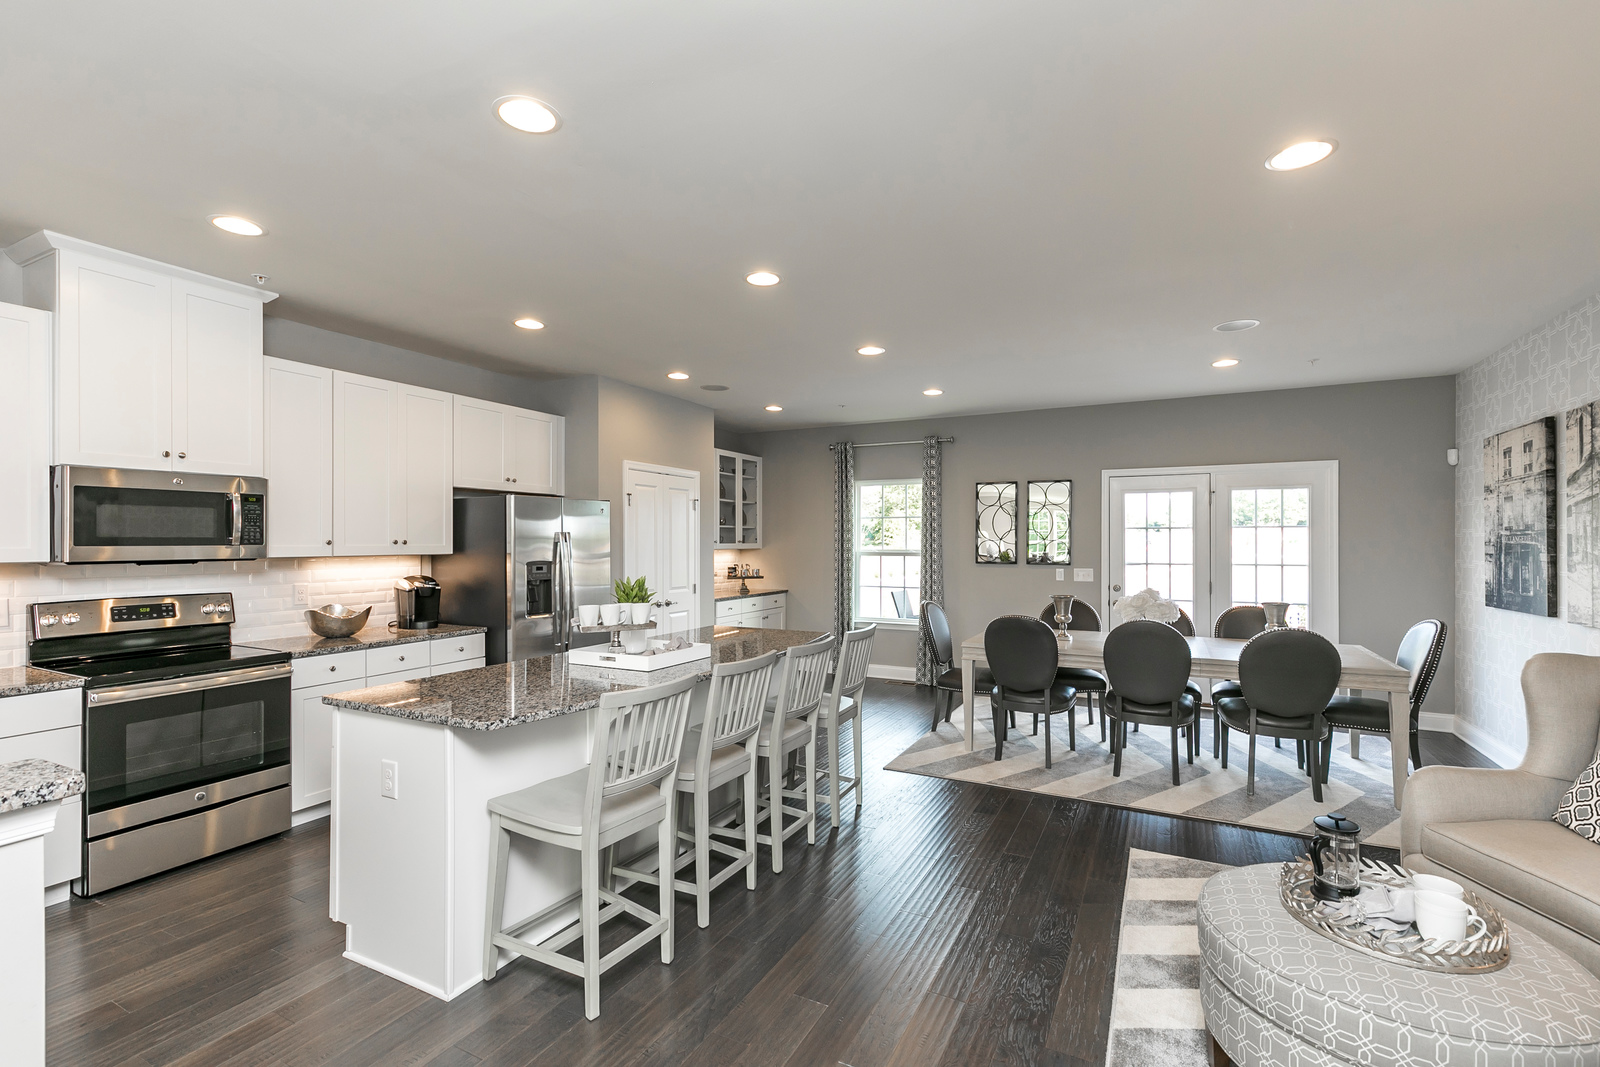 New Homes for sale at Rappahannock Landing in ...